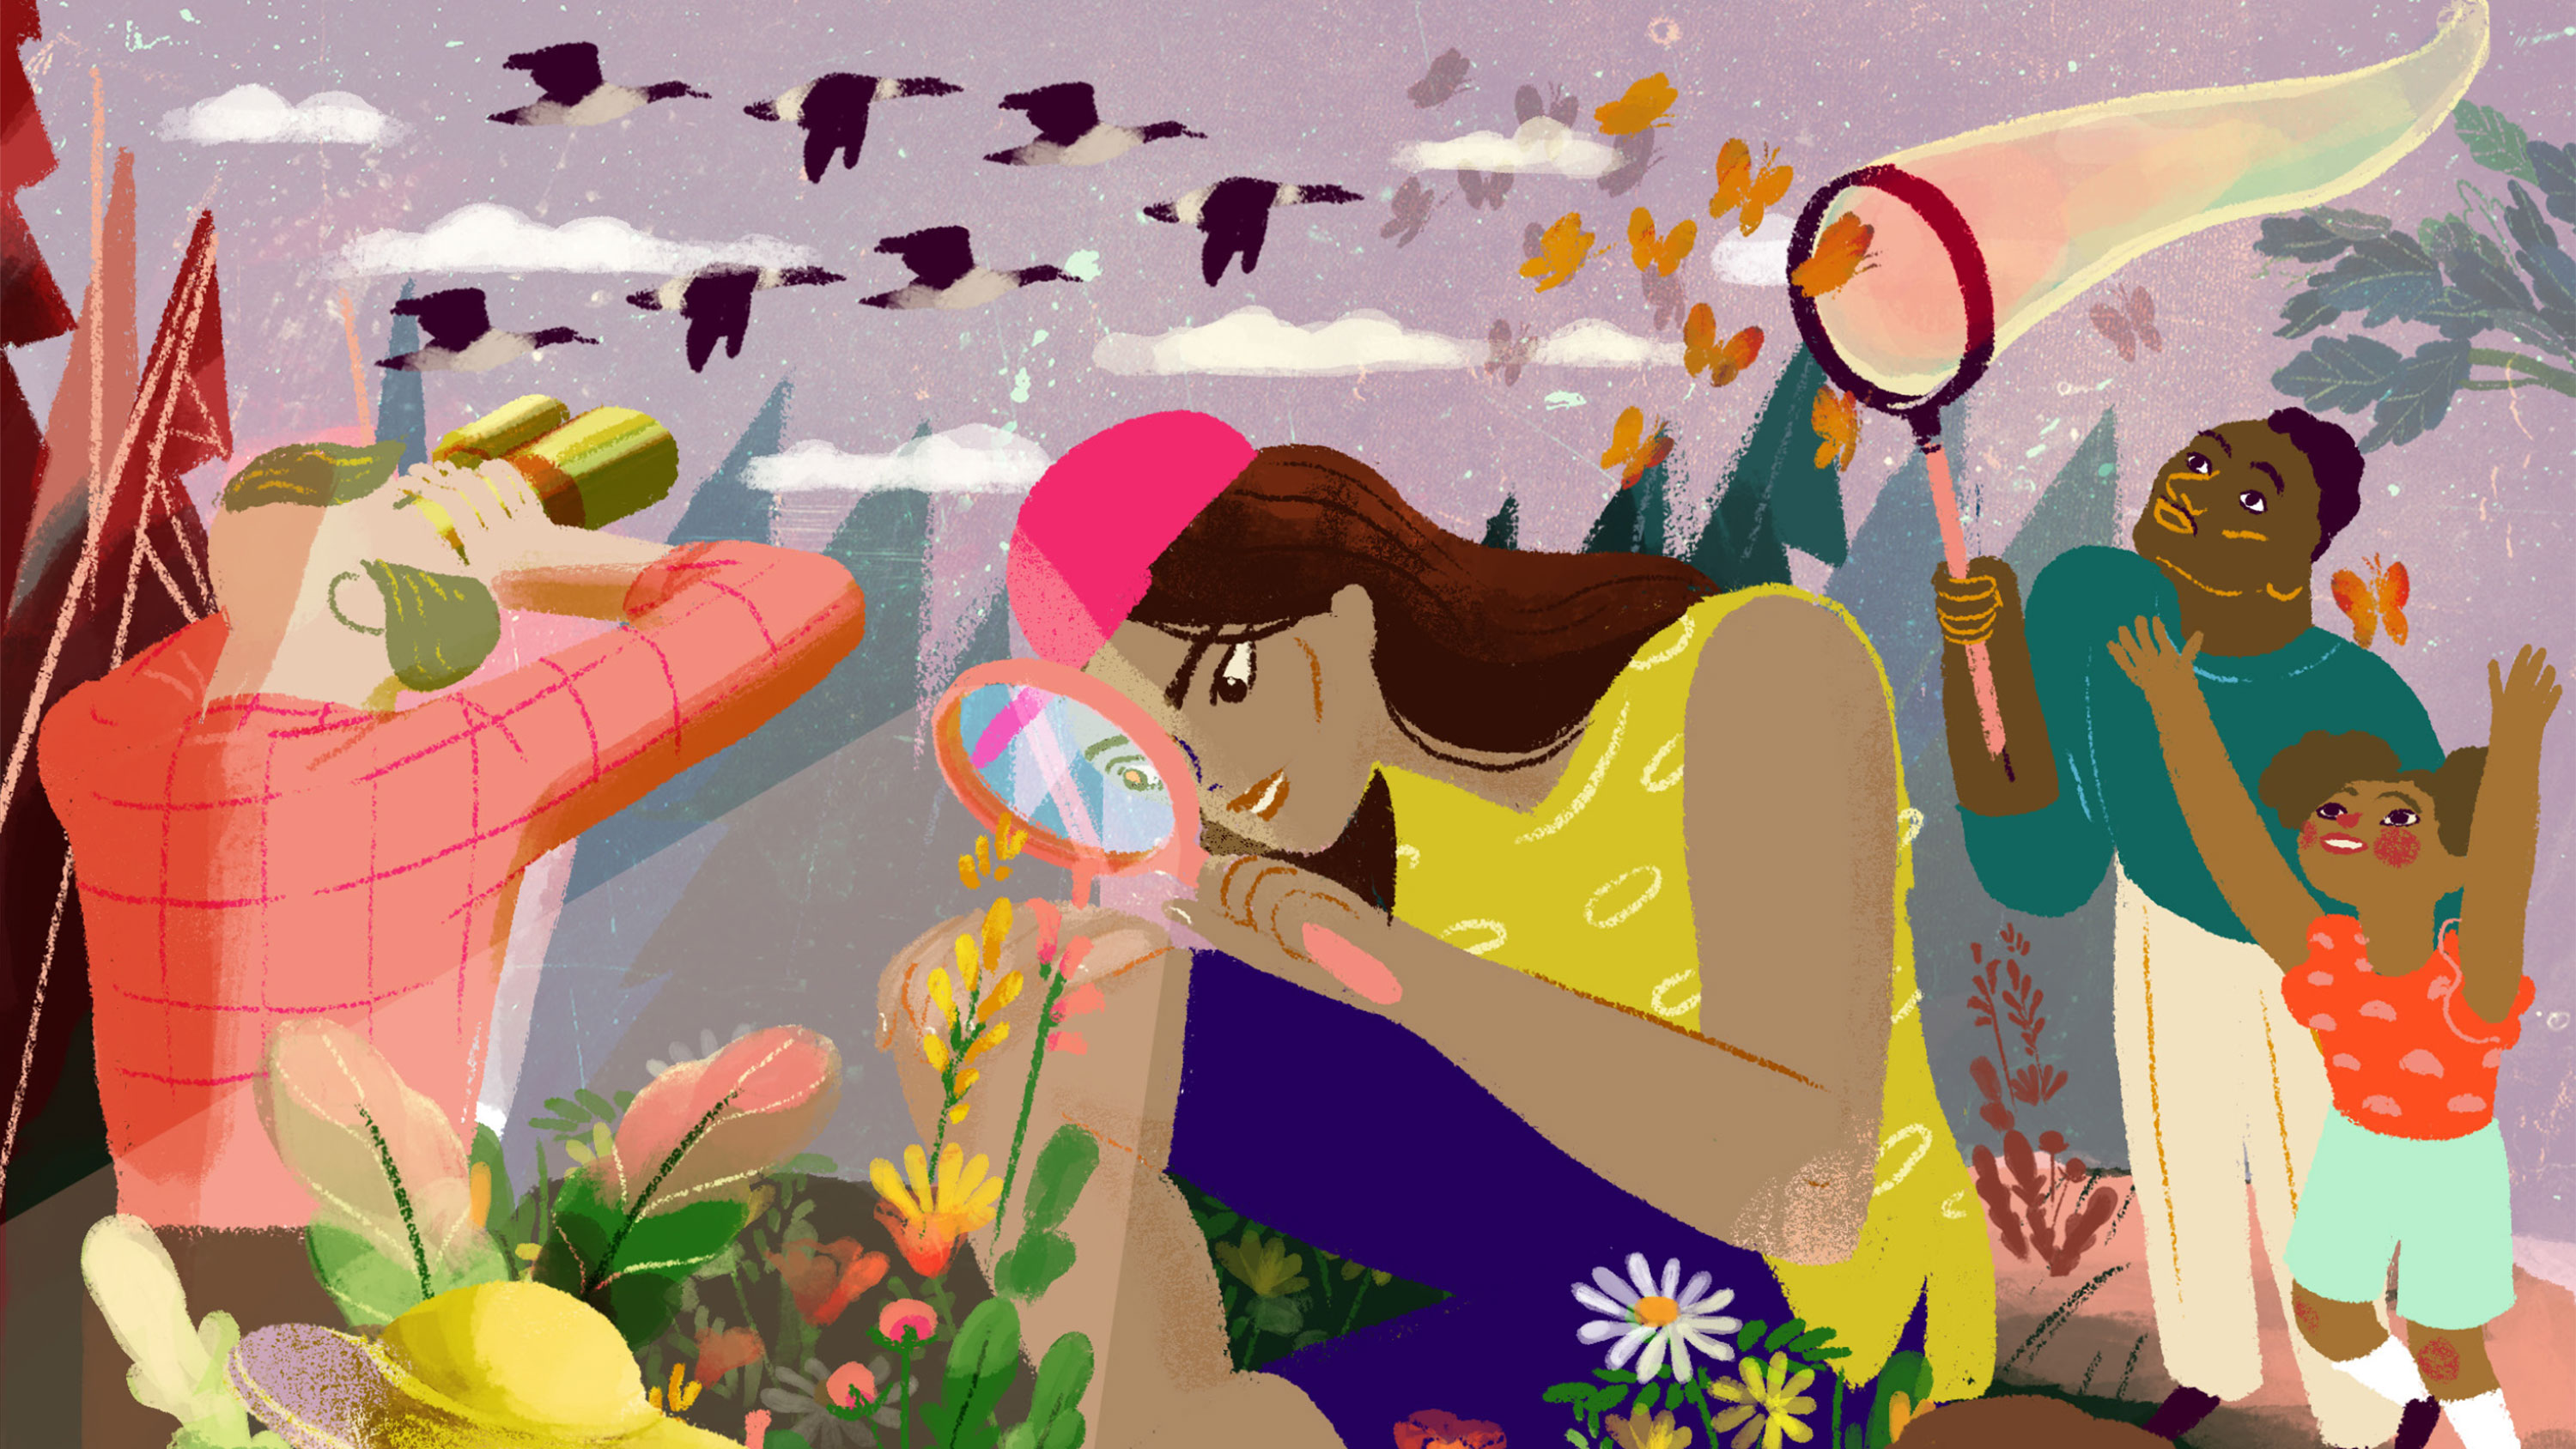 A colorful illustration of people doing citizen science